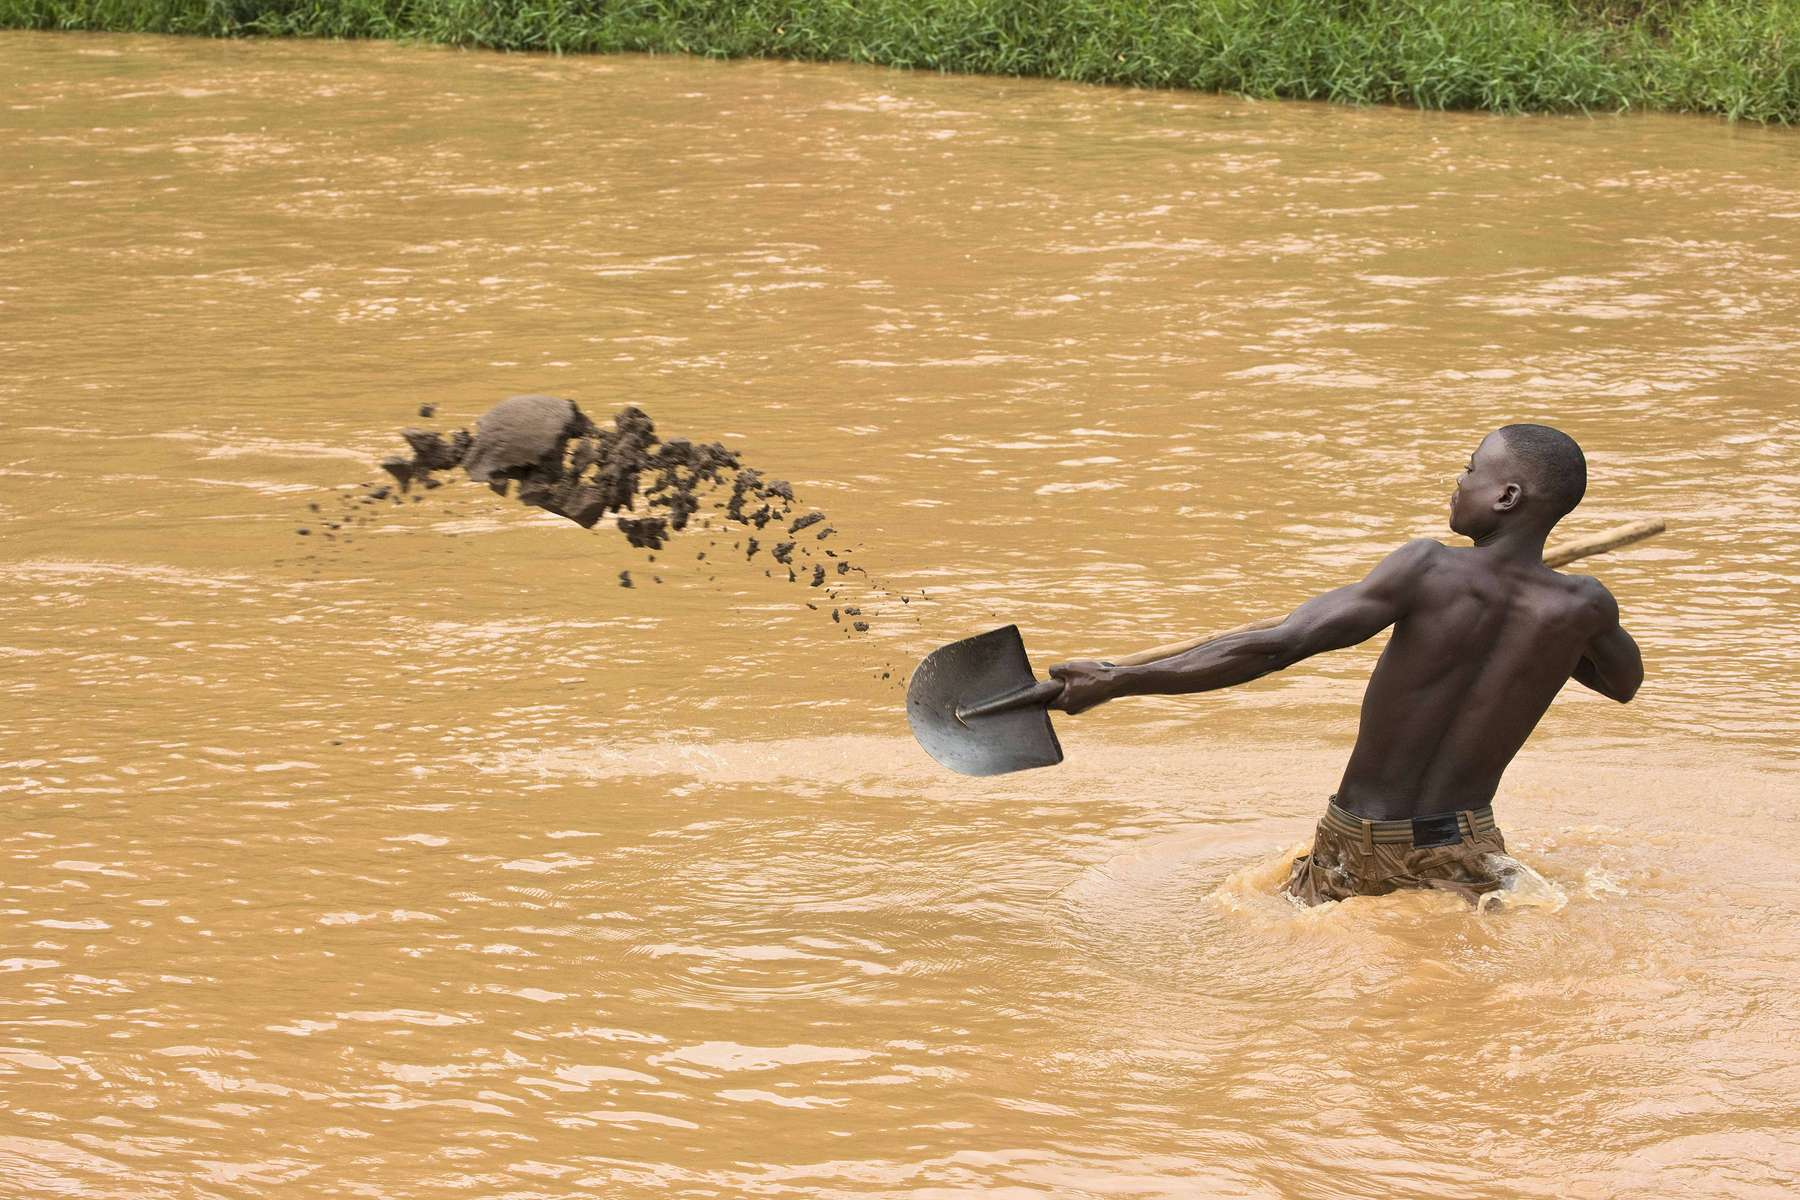 Digging sand in the Nyabarongo river, Rwanda